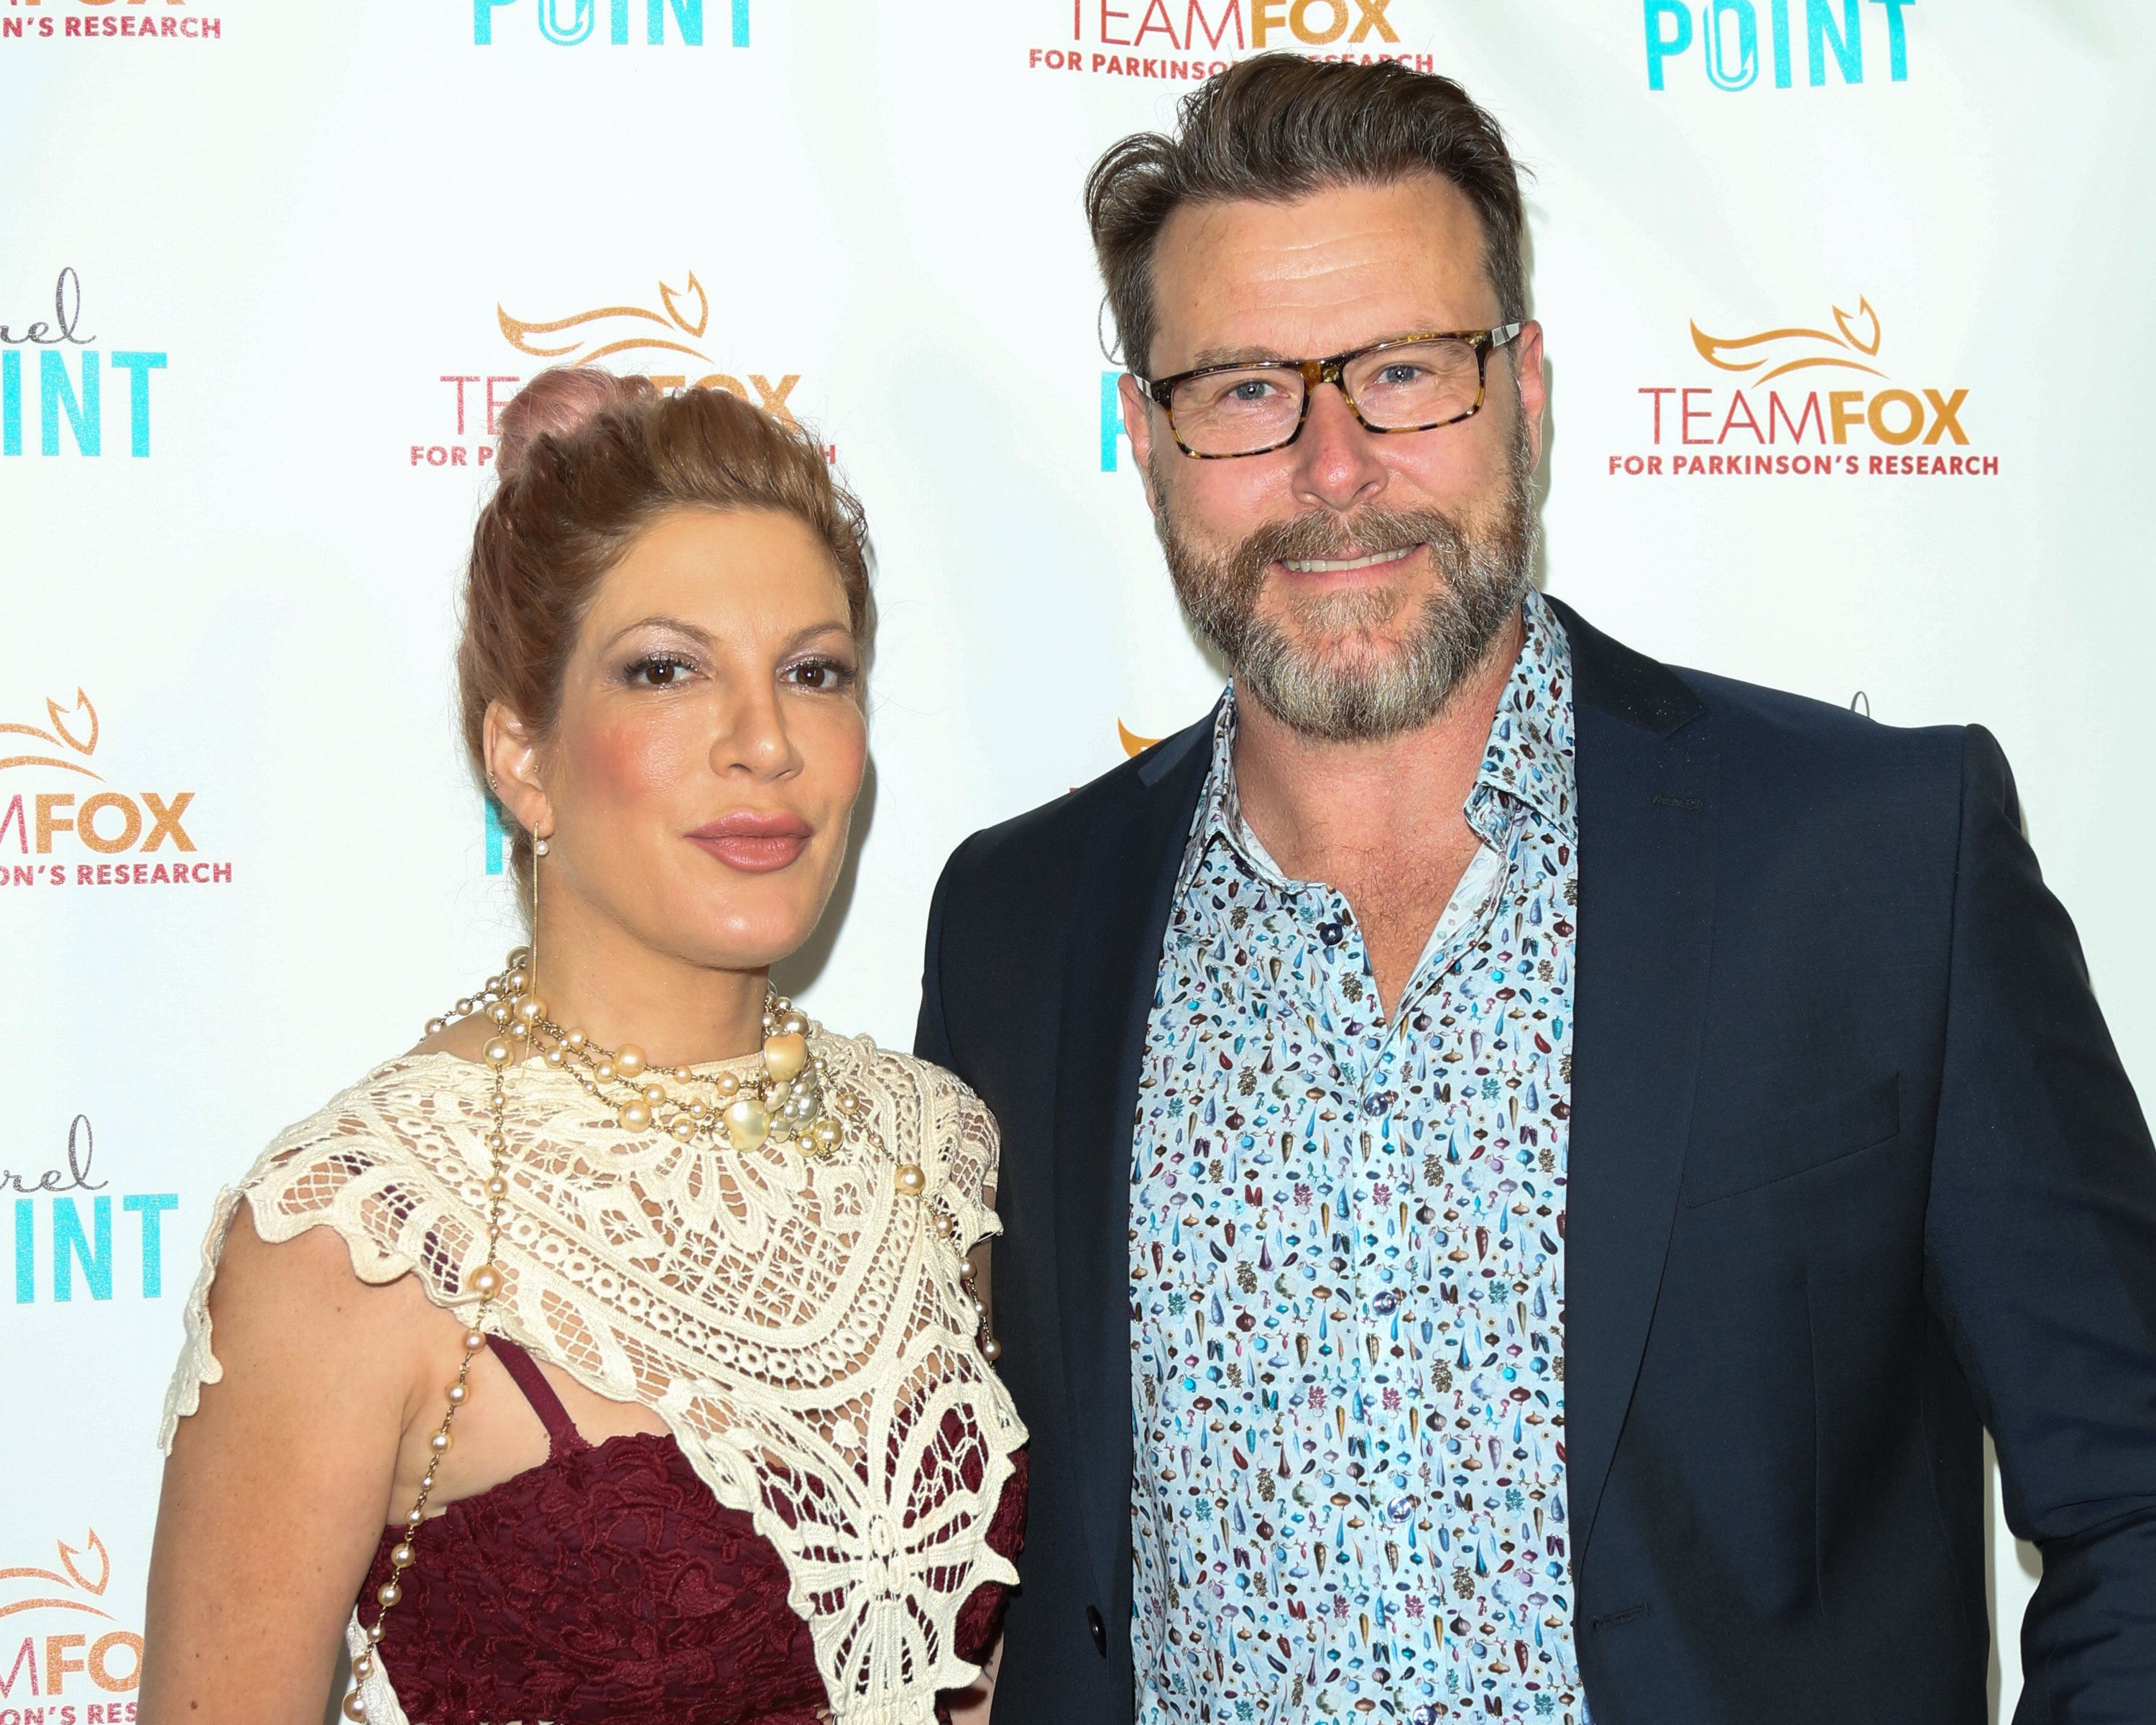 STUDIO CITY, CA - JULY 27:  Actors Tori Spelling (L) and Dean McDermott (R) attend the 'Raising The Bar To End Parkinson's' at Laurel Point on July 27, 2016 in Studio City, California.  (Photo by Paul Archuleta/FilmMagic)